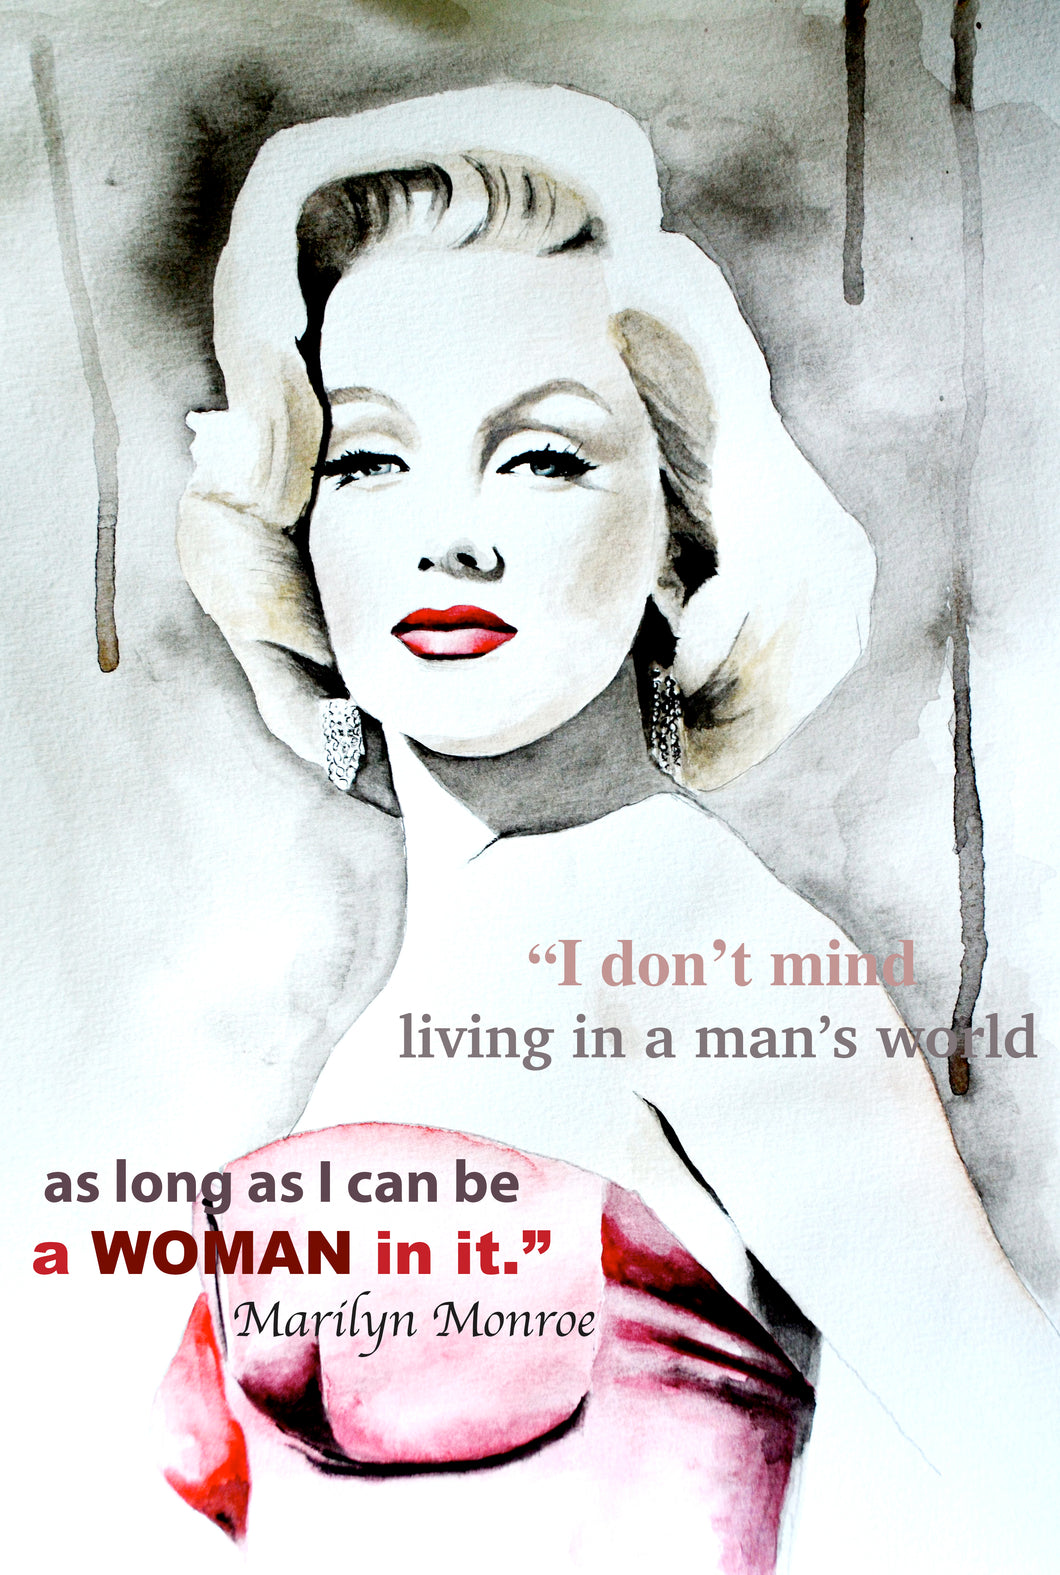 Marilyn Monroe Fashion Illustration Watercolor Art - OKSI Fine Art